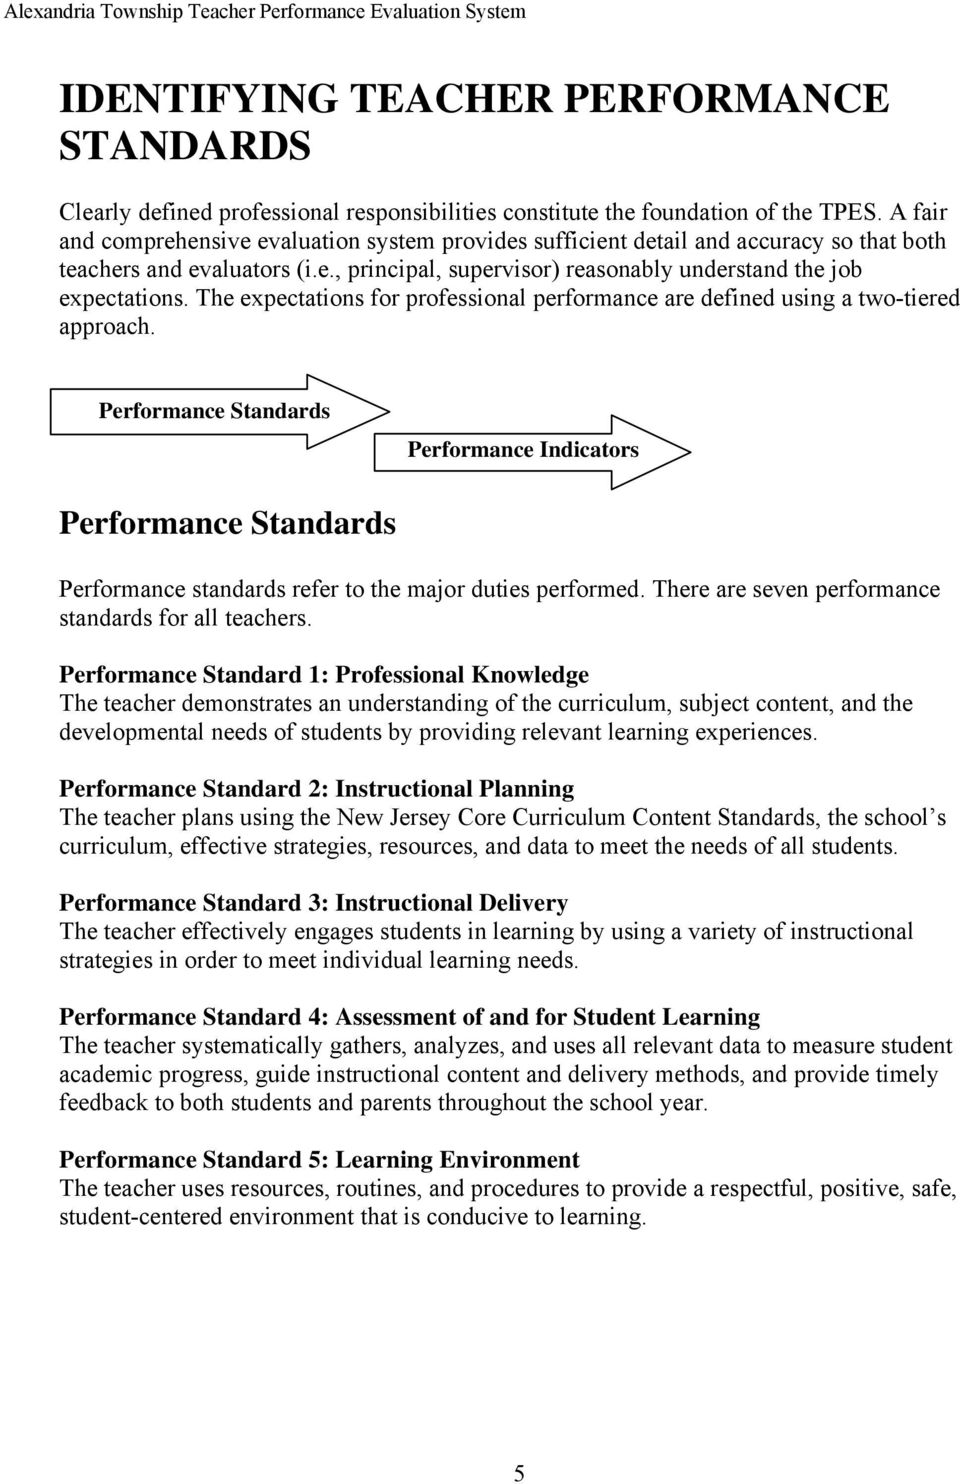 The expectations for professional performance are defined using a two-tiered approach.